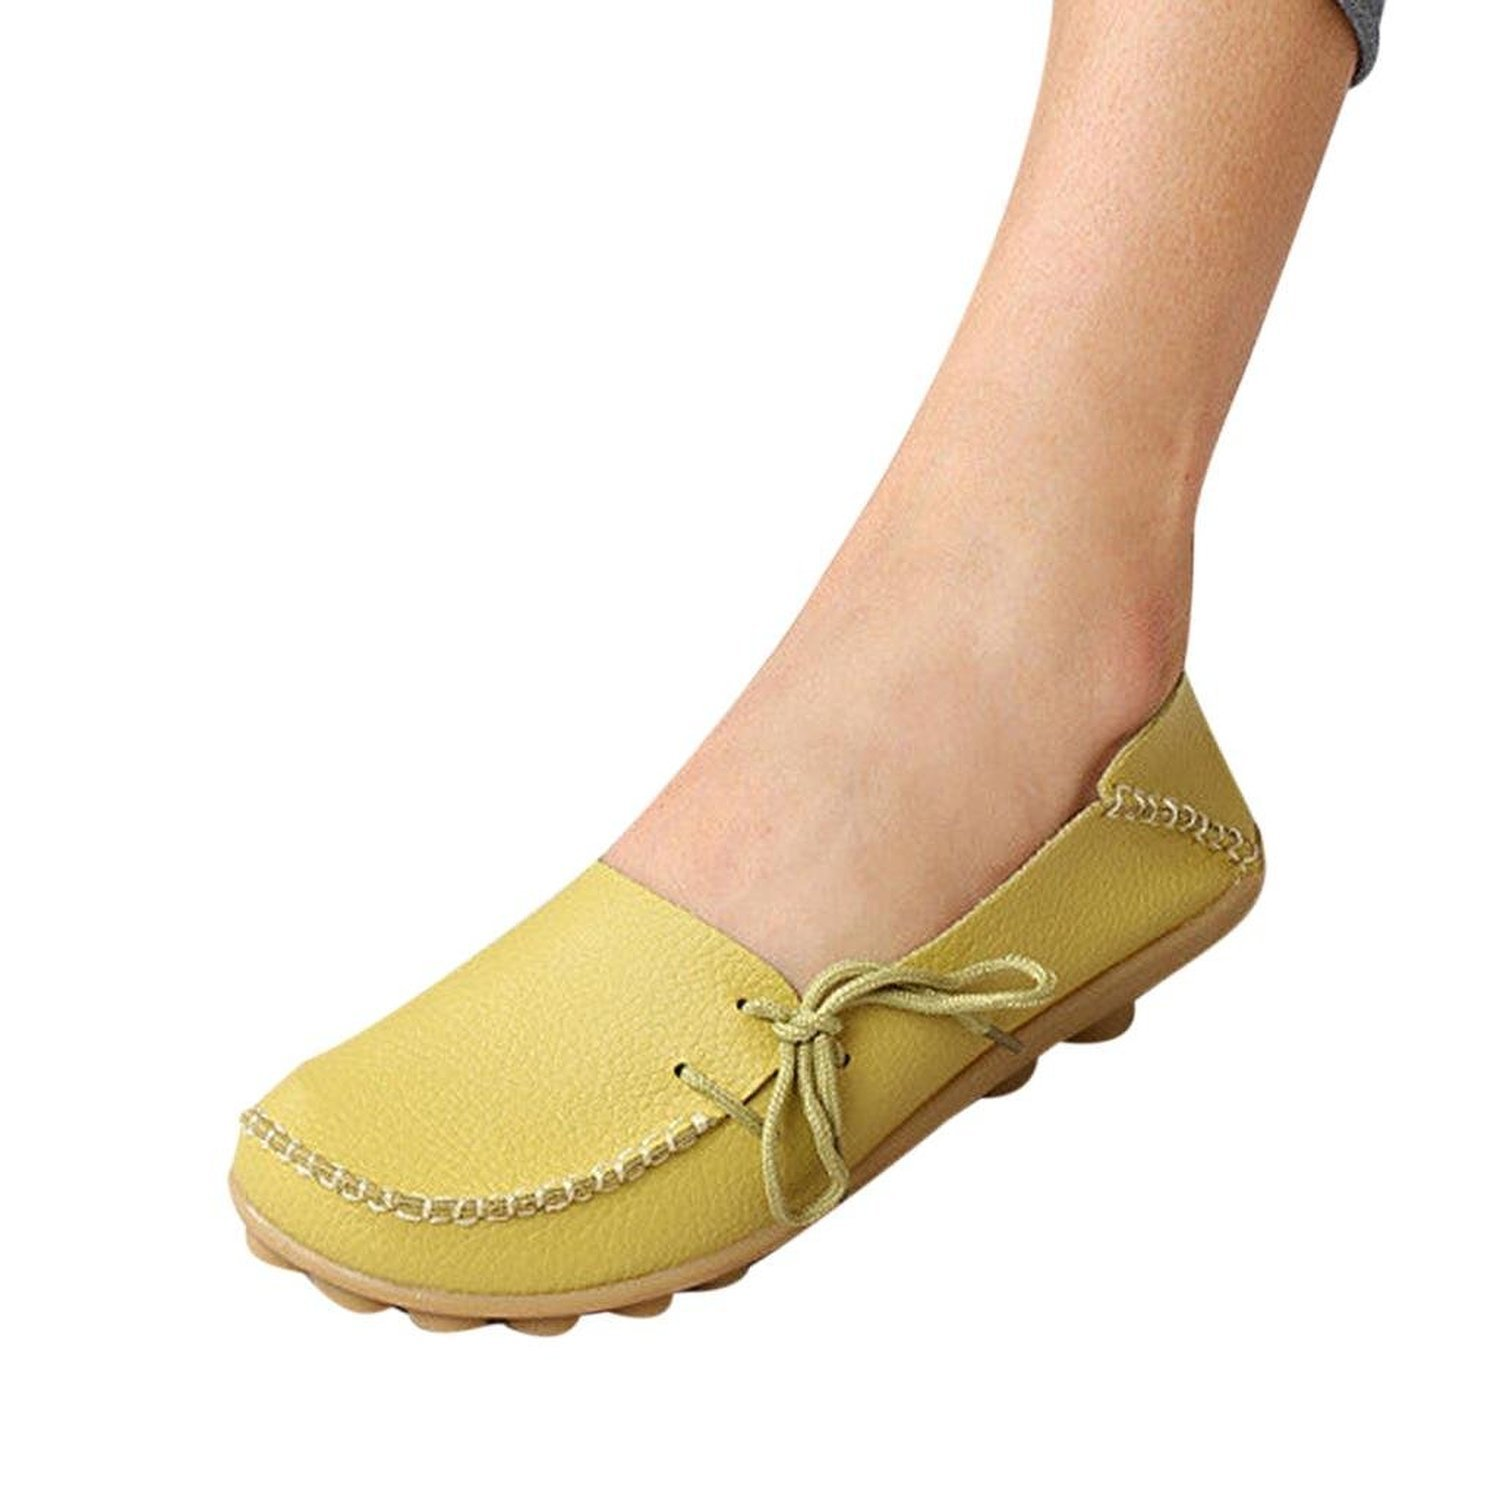 Womens Loafer Shoes On Sale - 28 Images - Sale New Womens Pink Loafers Pumps Deck Shoes 3 Ebay ...